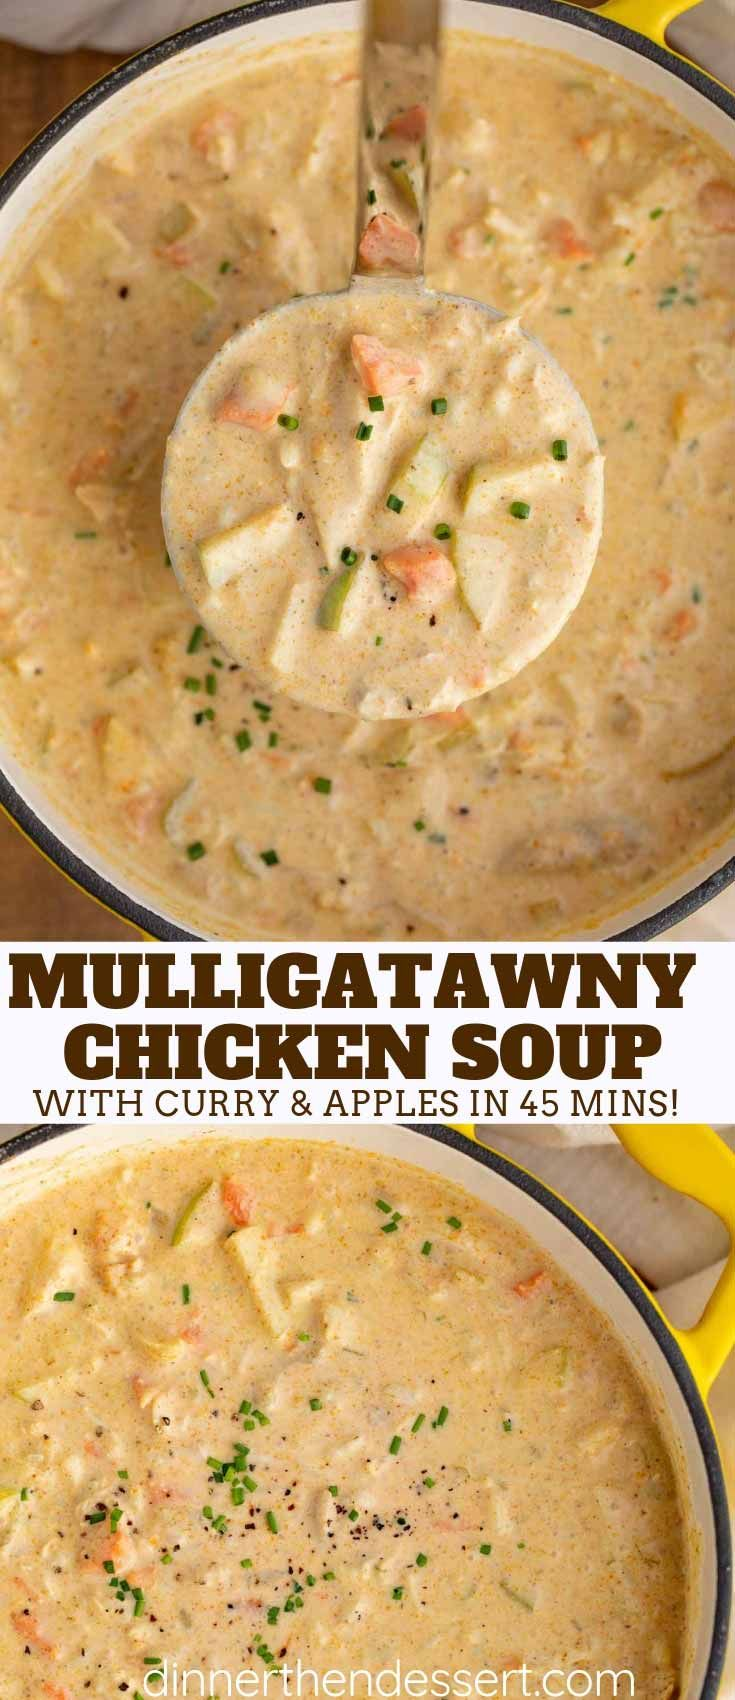 Easy Mulligatawny Soup is a savory Indian curry soup made with apples, carrots, rice, and chicken in a seasoned creamy broth, ready in 60 minutes! #curry #dinner #soup #apples #rice #indian #indianrecipes #stew #chowder #chicken #dinnerthendessert #mulligatawnysoup